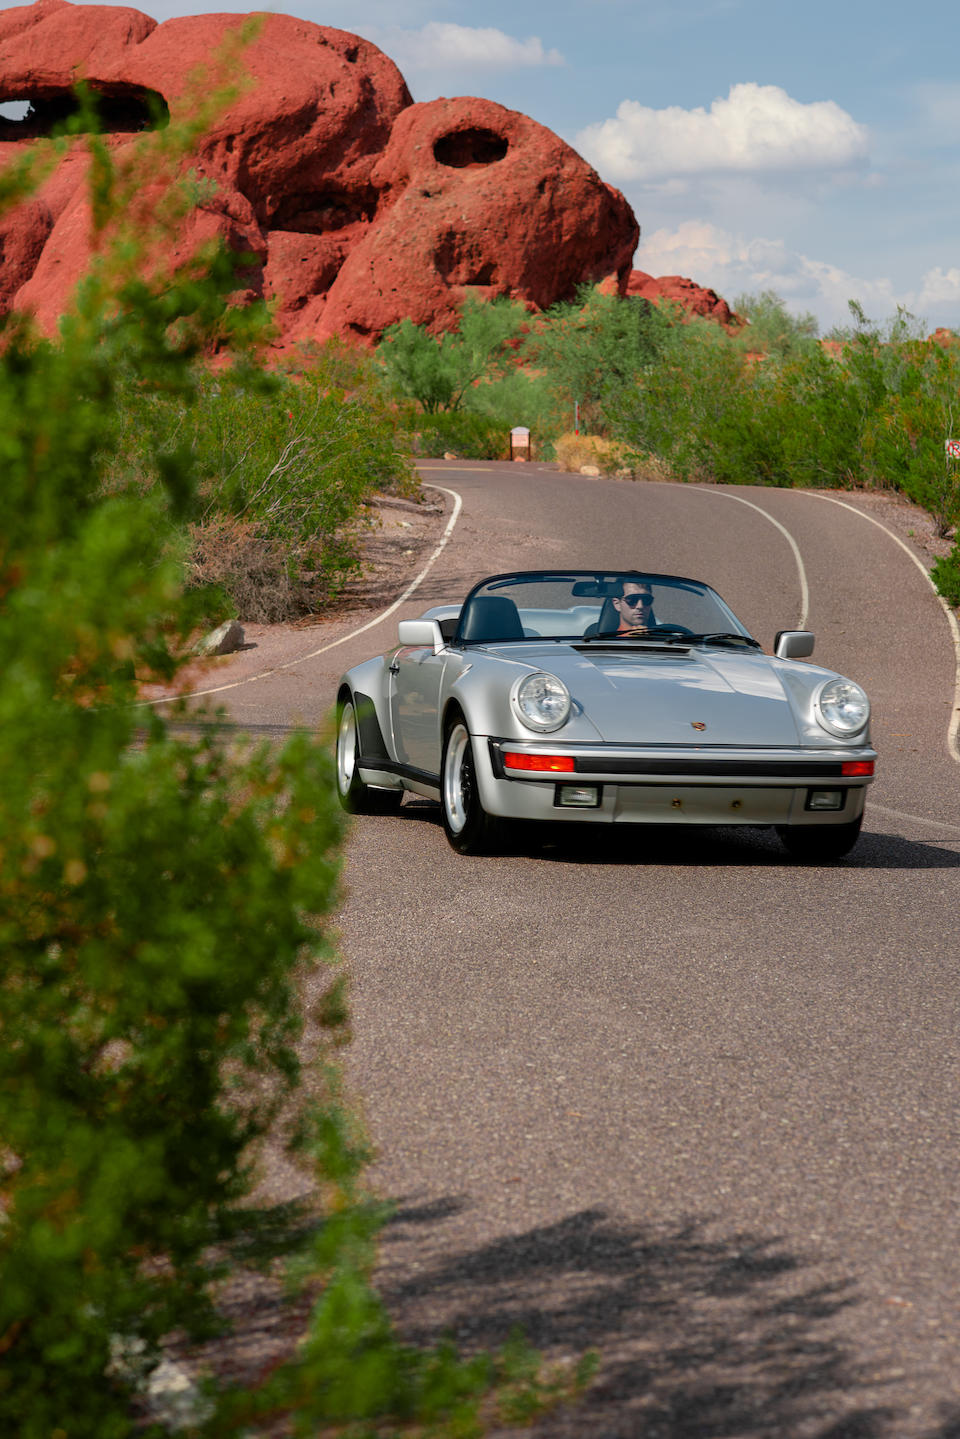 <b>1989 Porsche 911 Carrera Speedster</b><br />VIN. WP0EB0910KS173116<br />Engine no. 64K05556